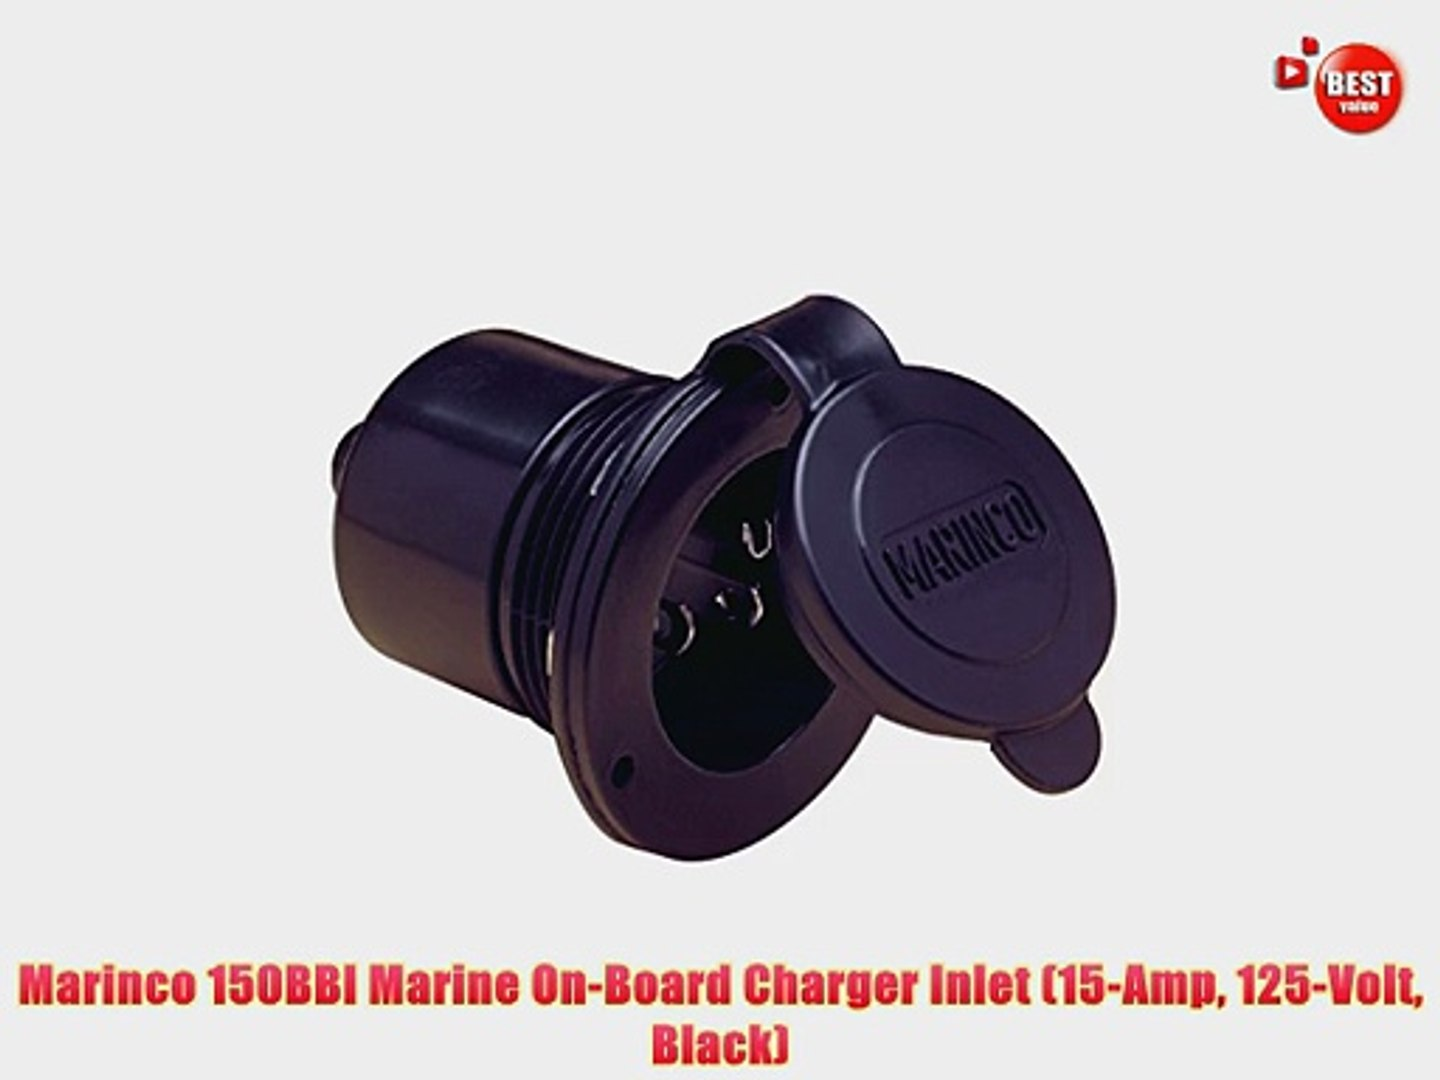 Marinco 150BBIW.RV Marinco On-Board Charger Inlet White 15 Amp